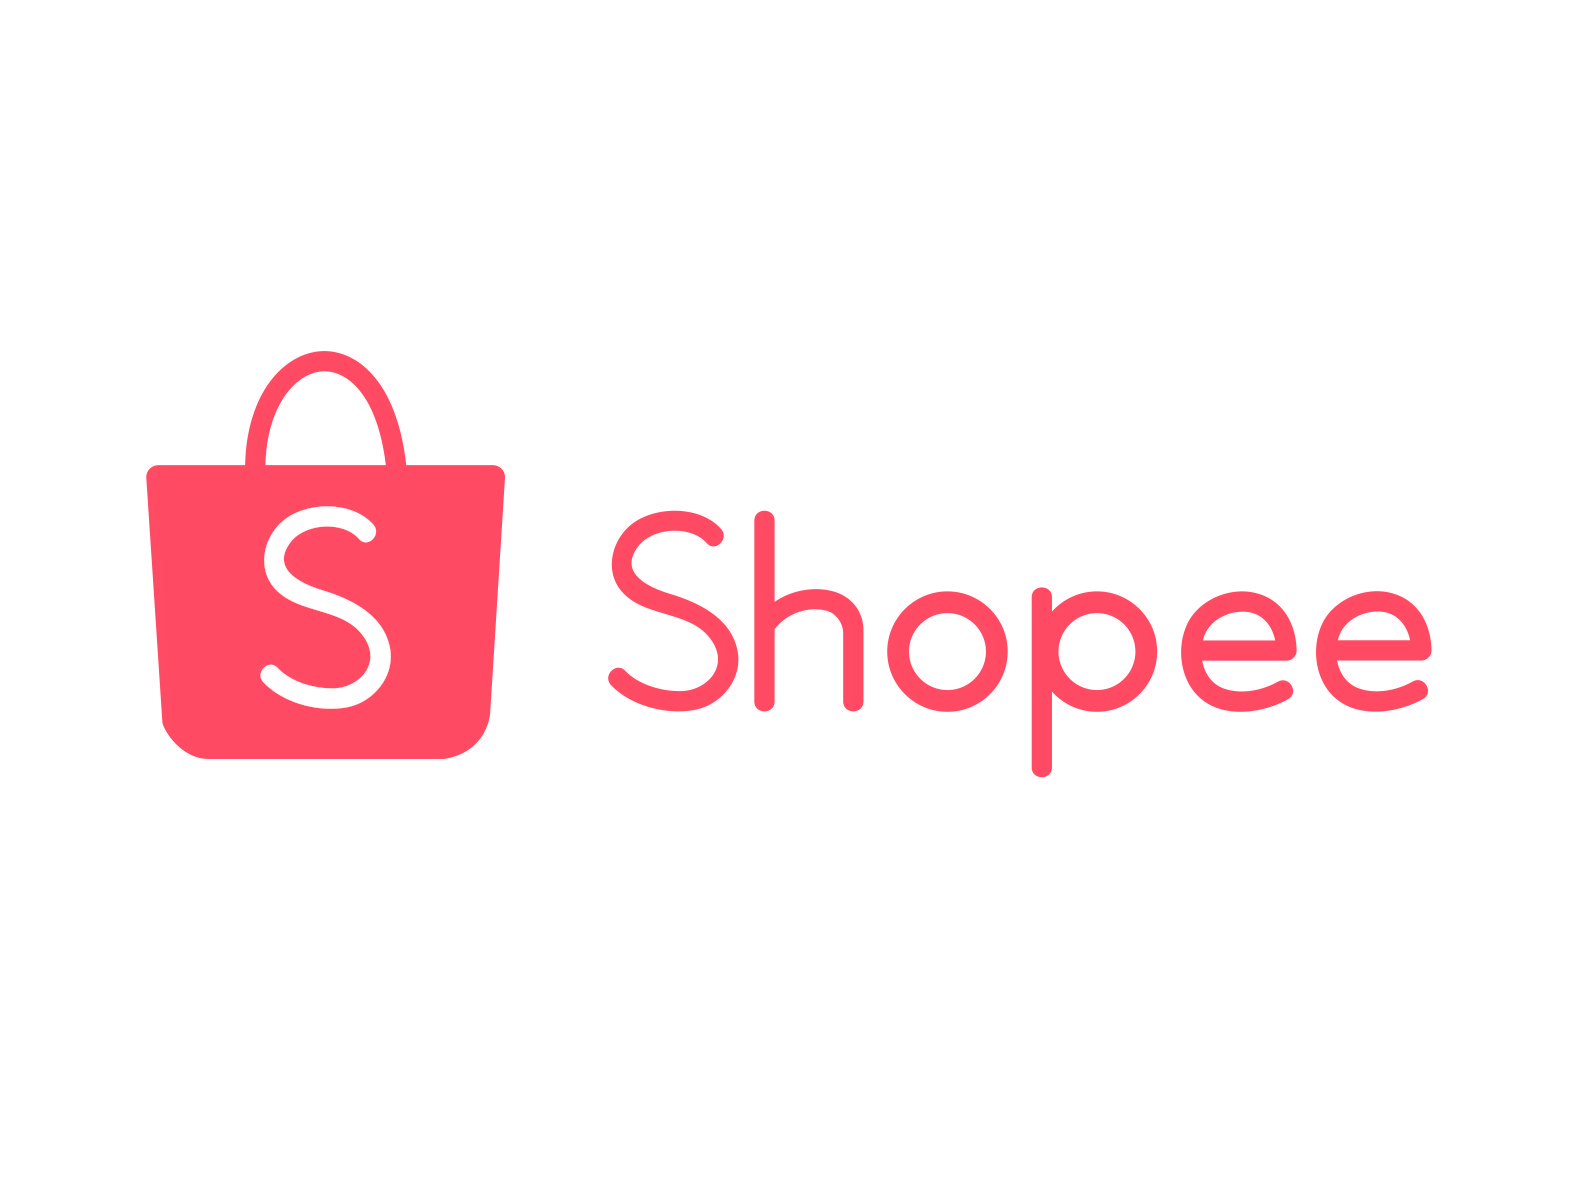 Logo Shopee Png Hd (Mountain Shadow Gallery).